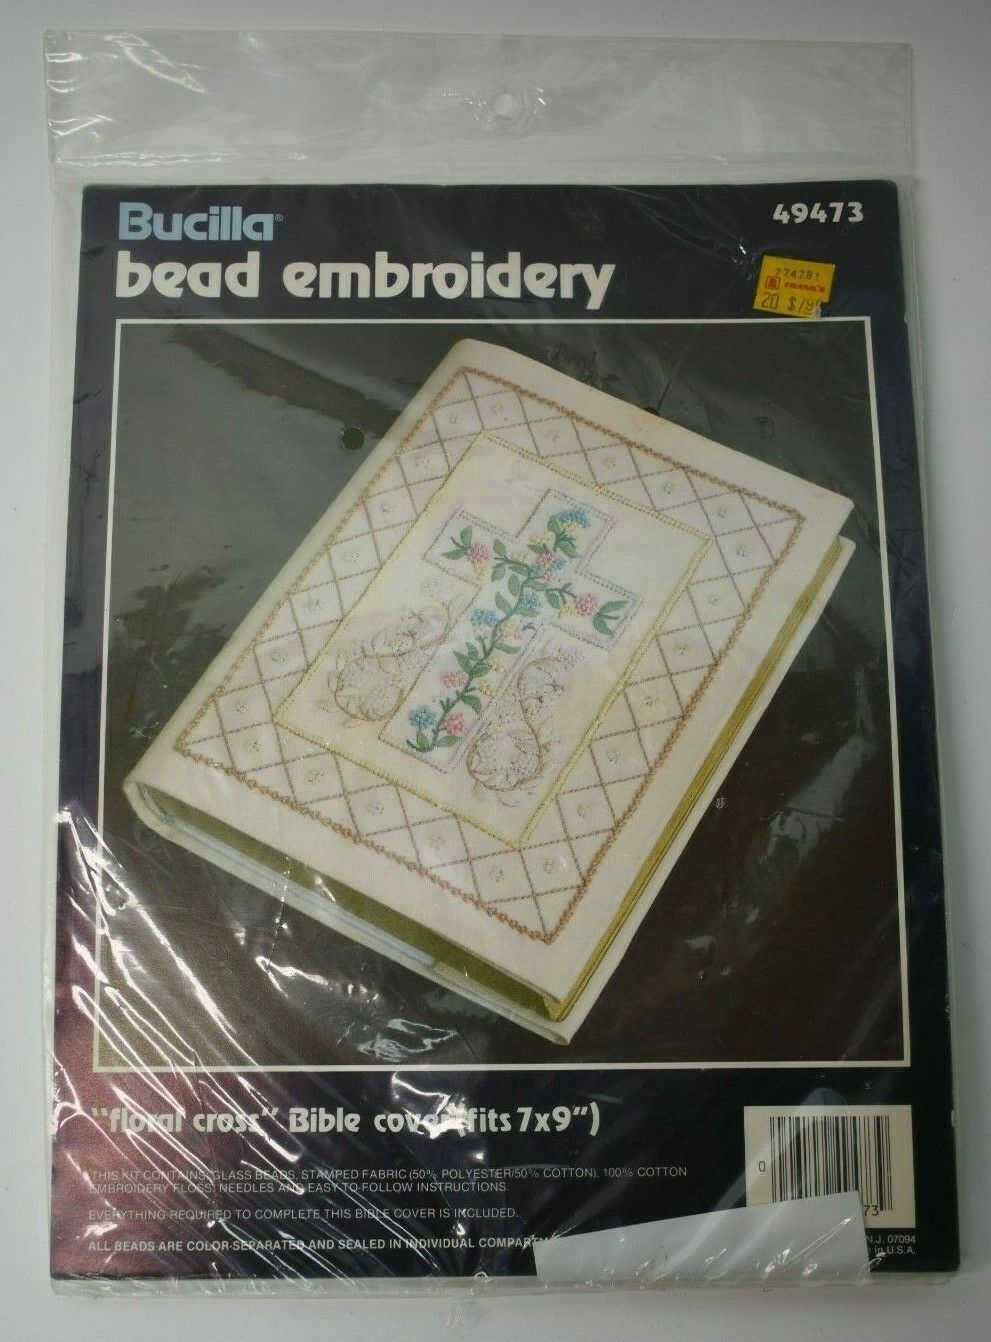 Primary image for Vtg Bucilla Bead Embroidery Floral Cross Bible Cover fits 7x9 49473